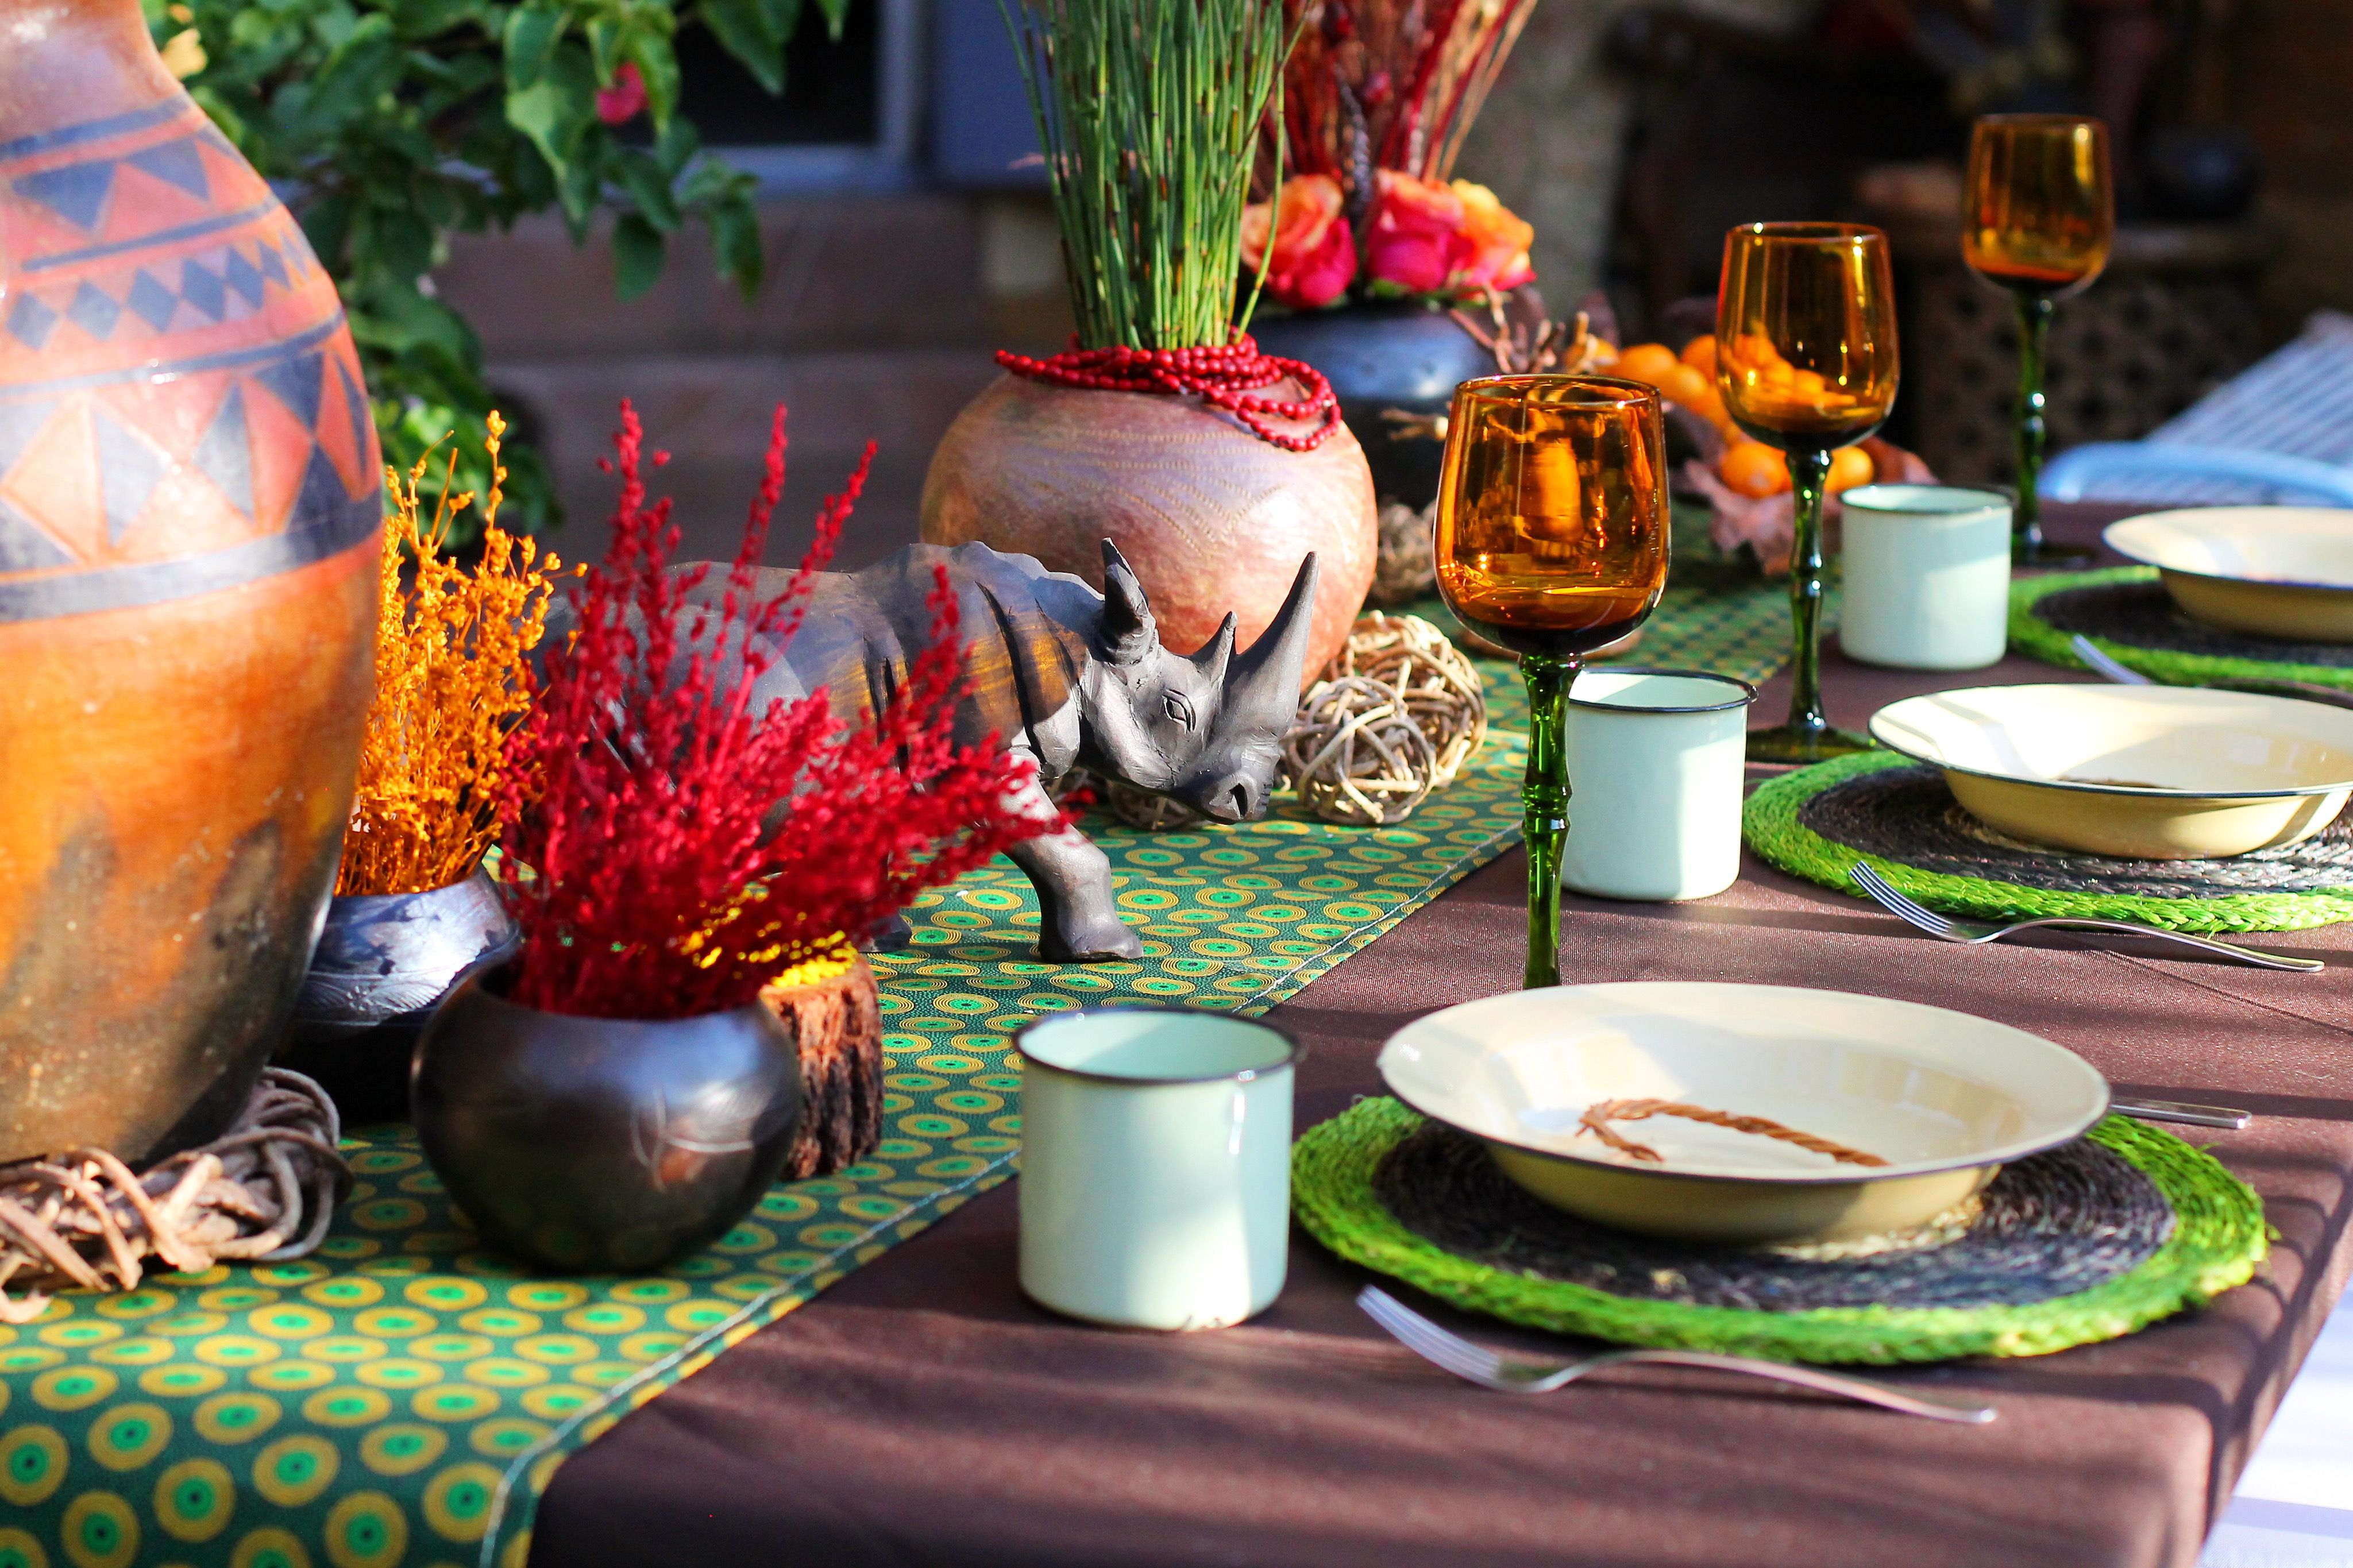 African Wedding Decorations: Traditional African Wedding Decor. Zulu Wedding